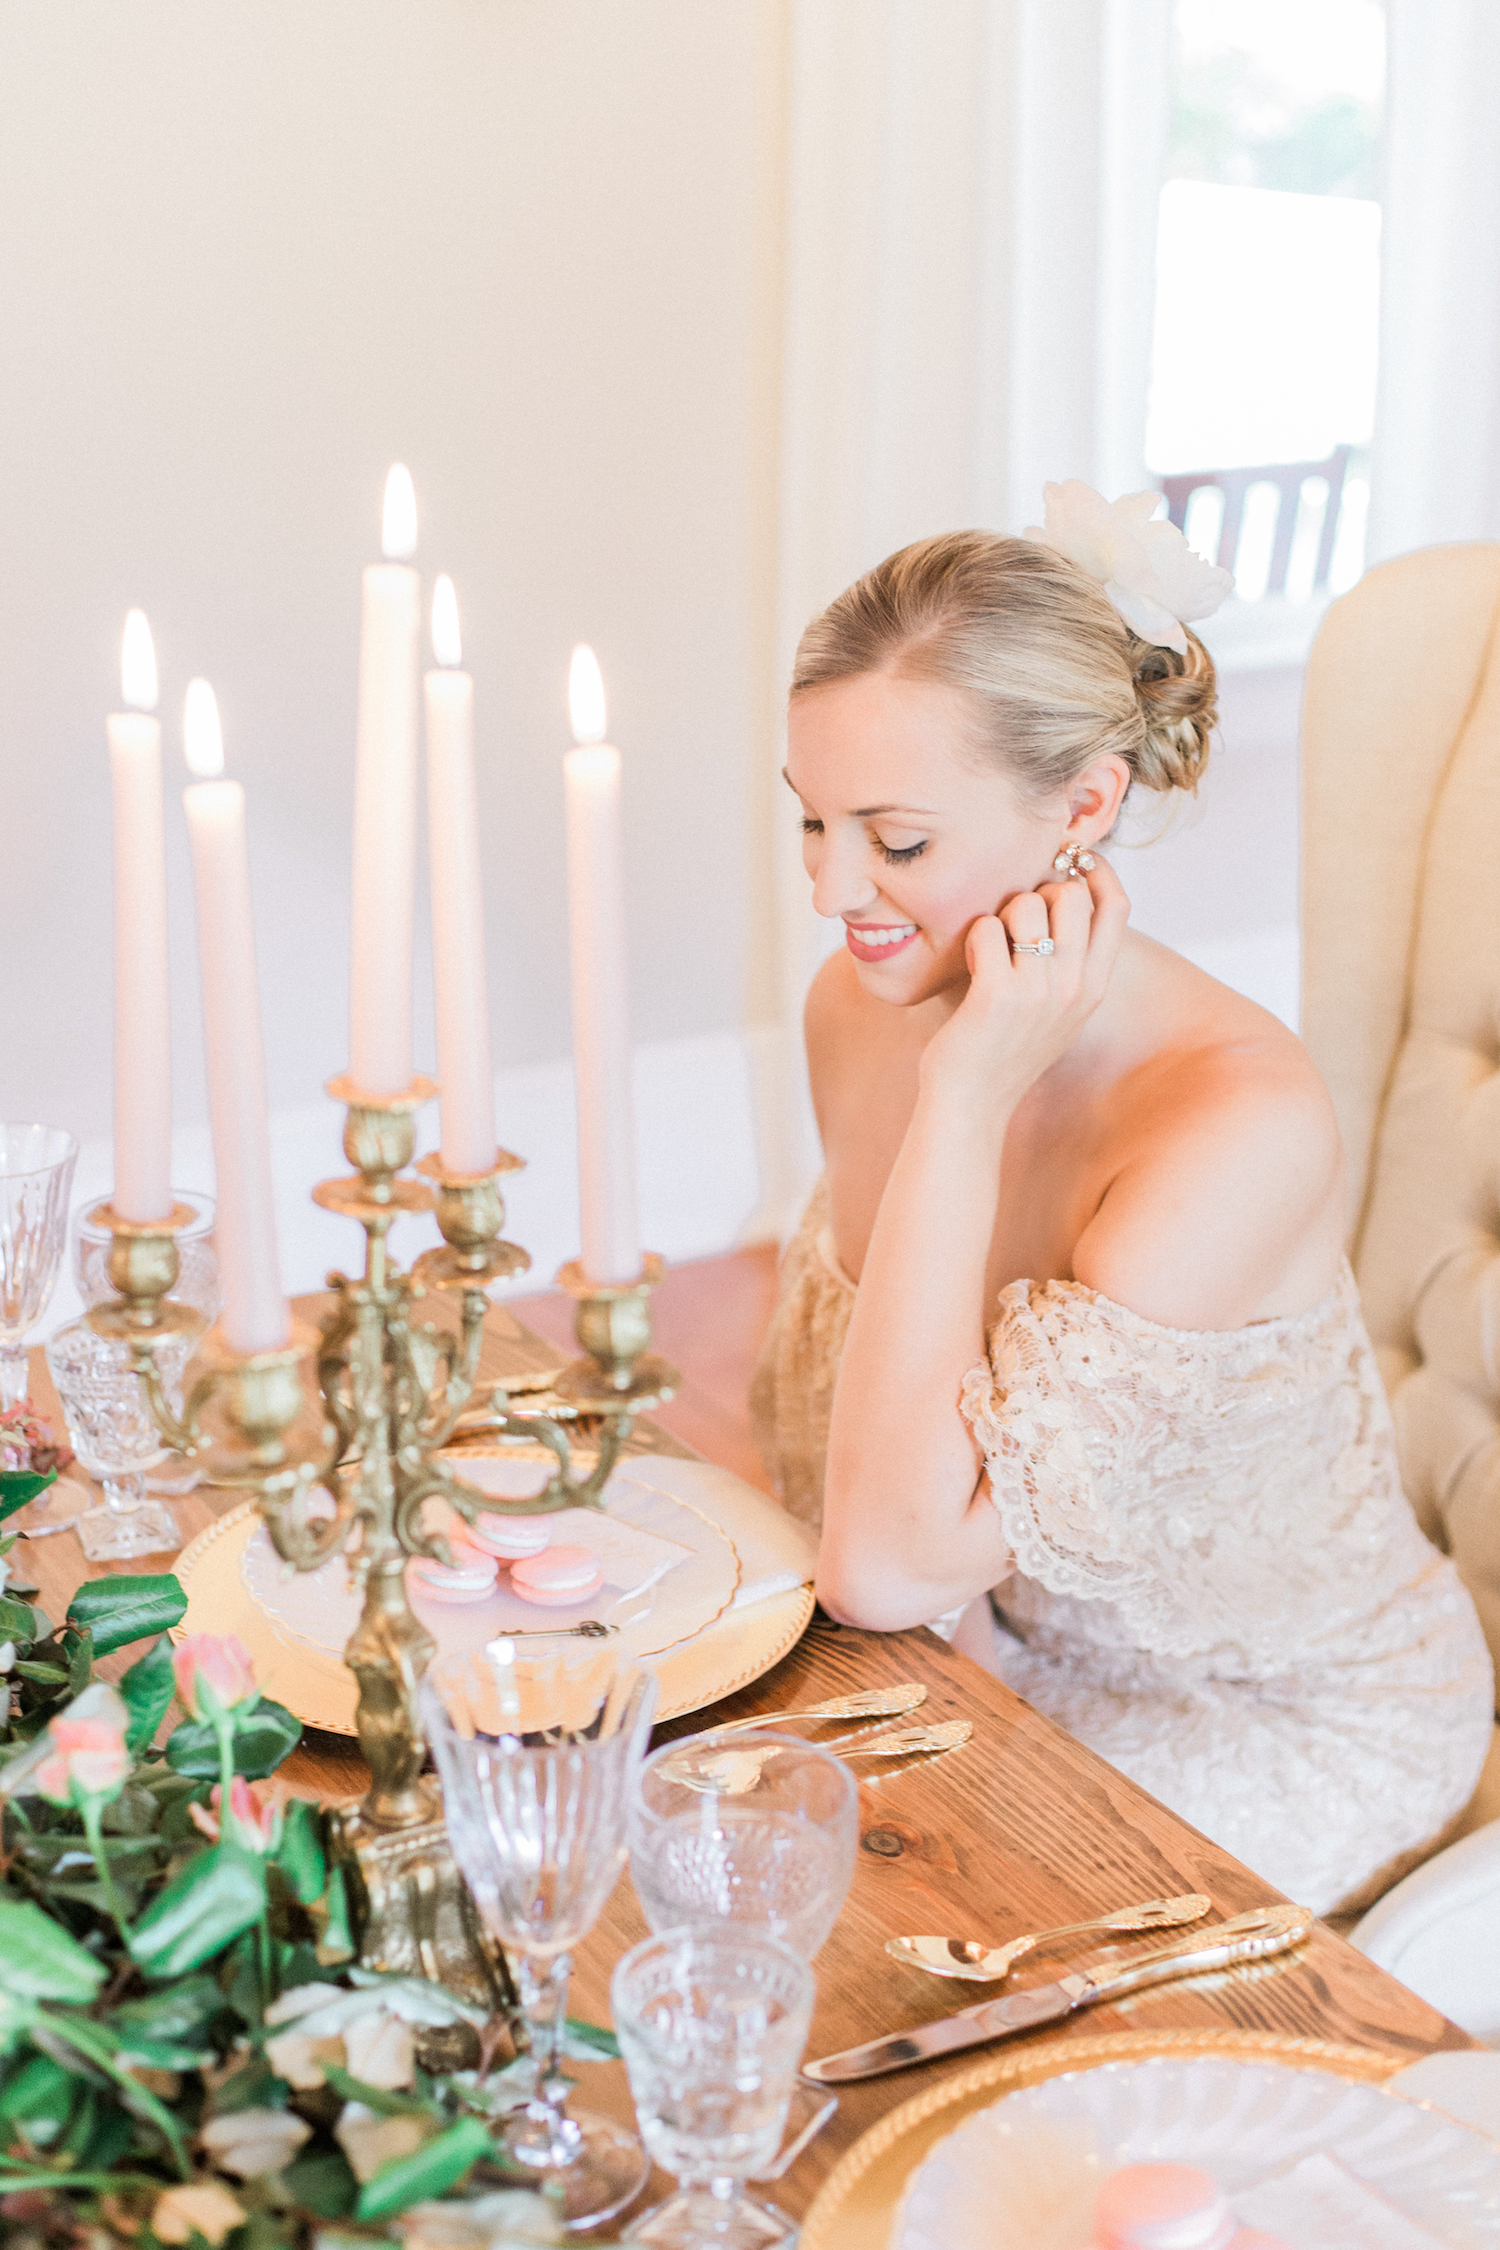 Bride sitting at sweetheart table with gold lace off shoulder wedding dress and bridal undo hair style.